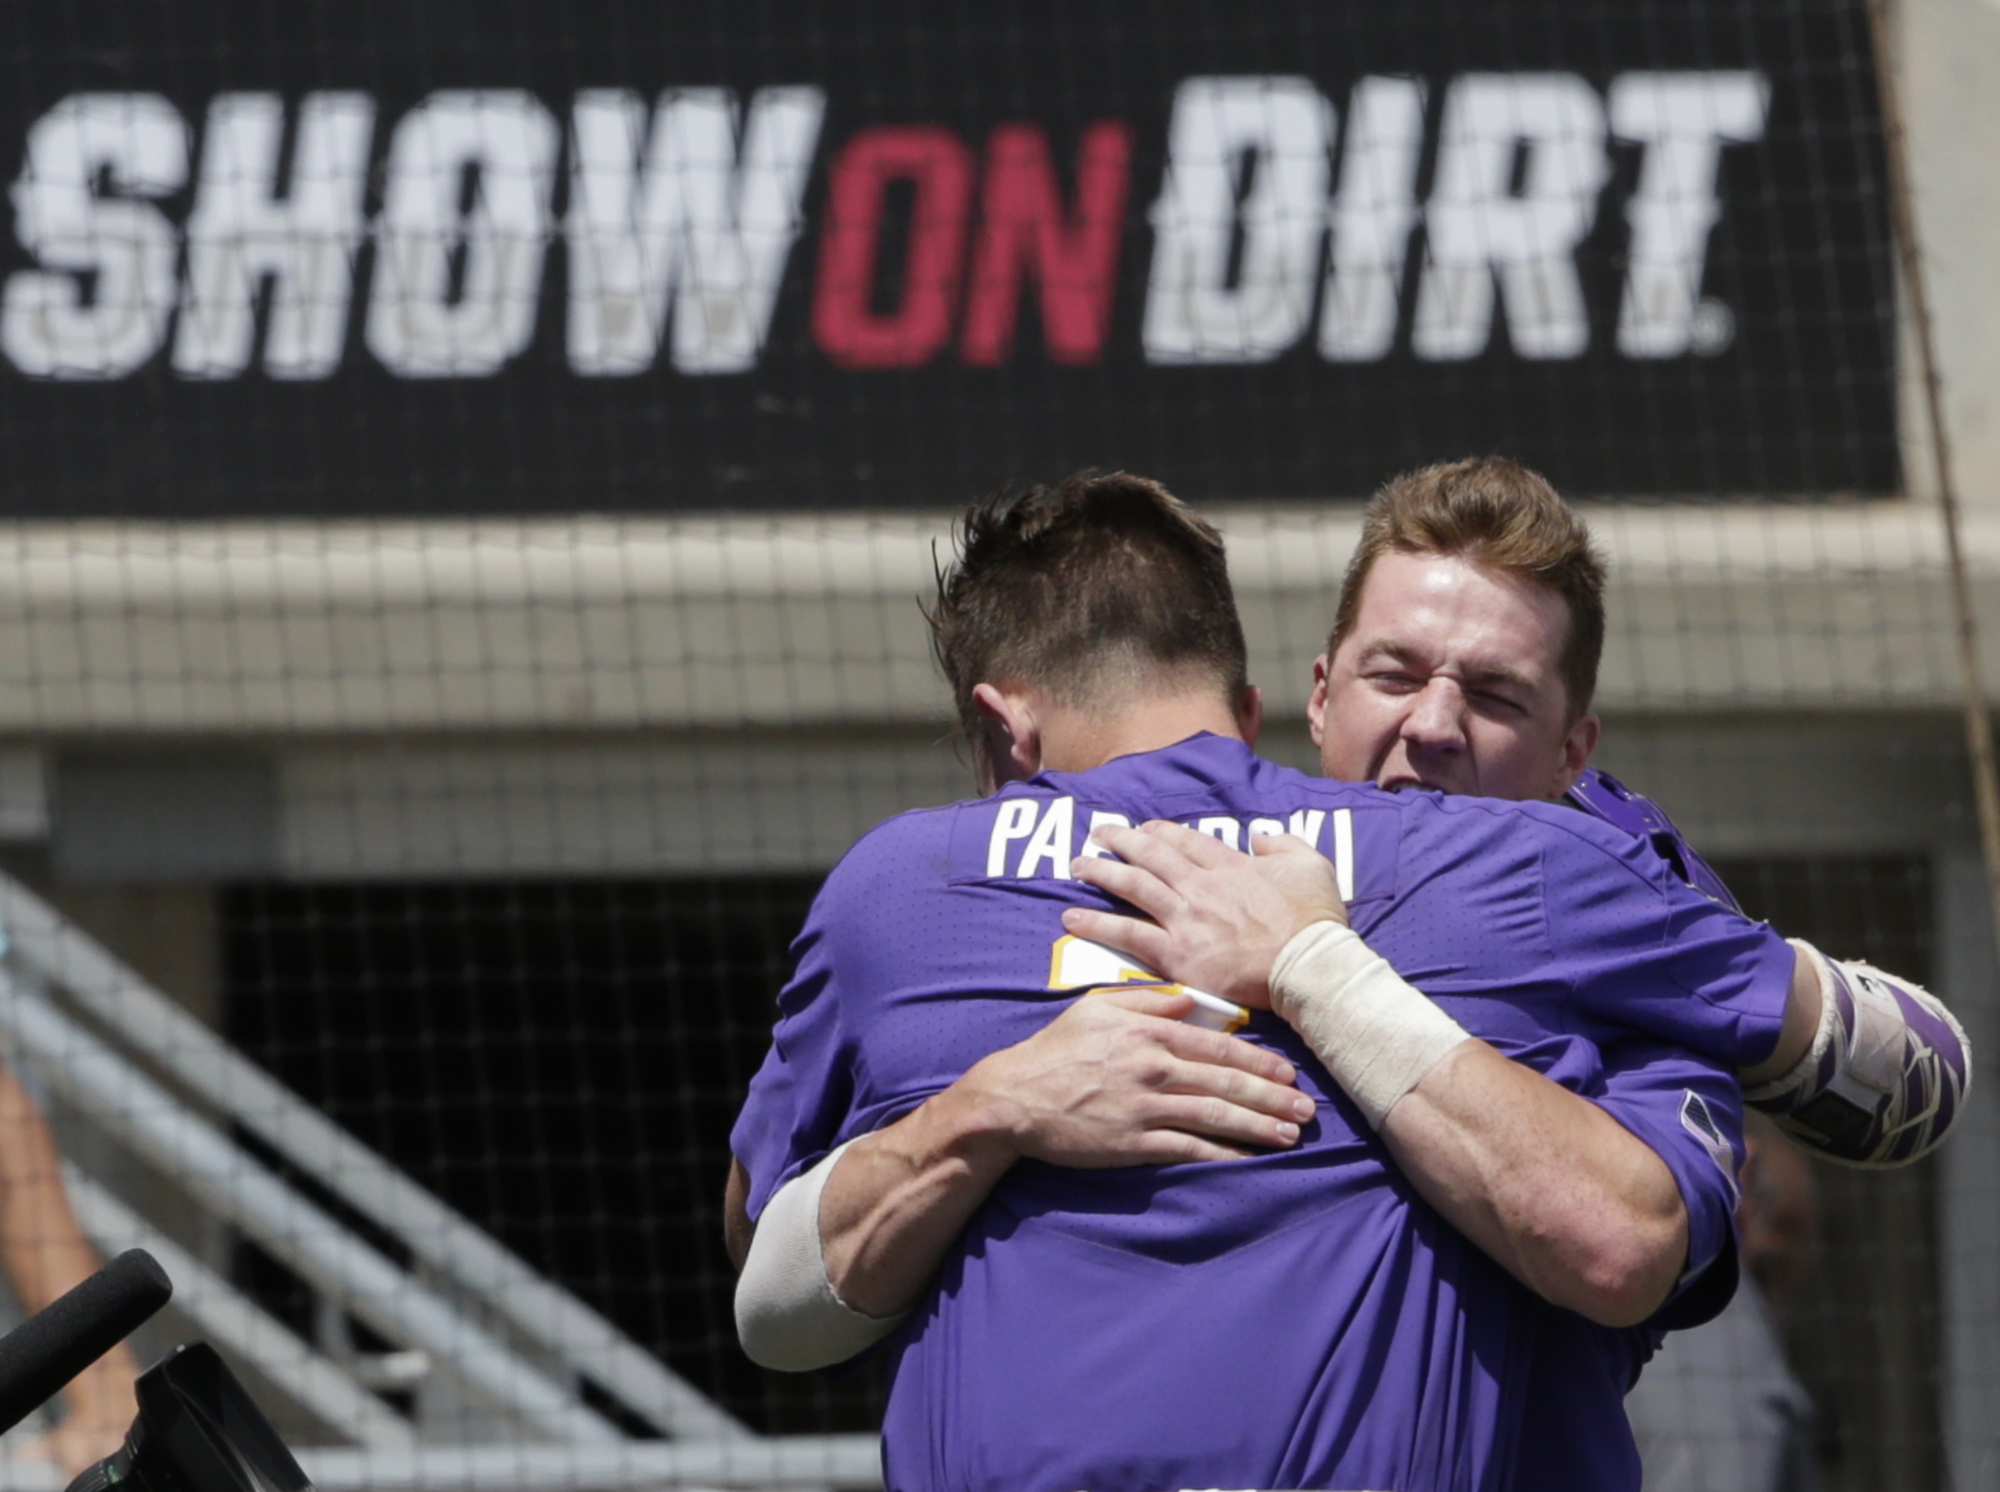 LSU's Michael Papierski (2), hugs Greg Deichmann, right, after scoring on his three-run home run against Oregon State in the third inning of an NCAA College World Series baseball elimination game in Omaha, Neb., Saturday, June 24, 2017. (AP Photo/Nati Harnik)